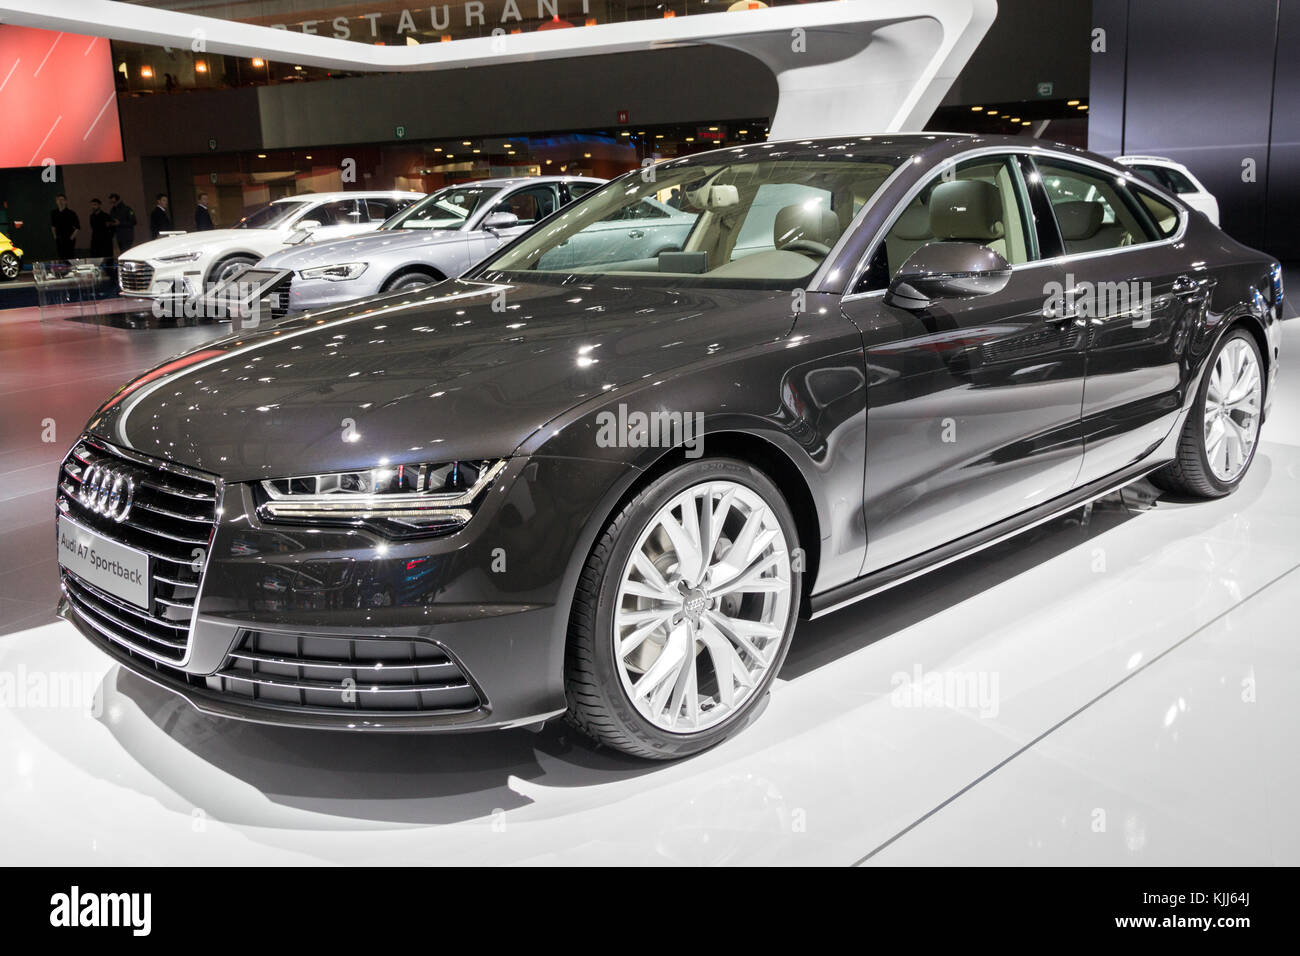 BRUSSELS   JAN 12, 2016: Audi A7 Sportback Car Showcased At The Brussels  Motor